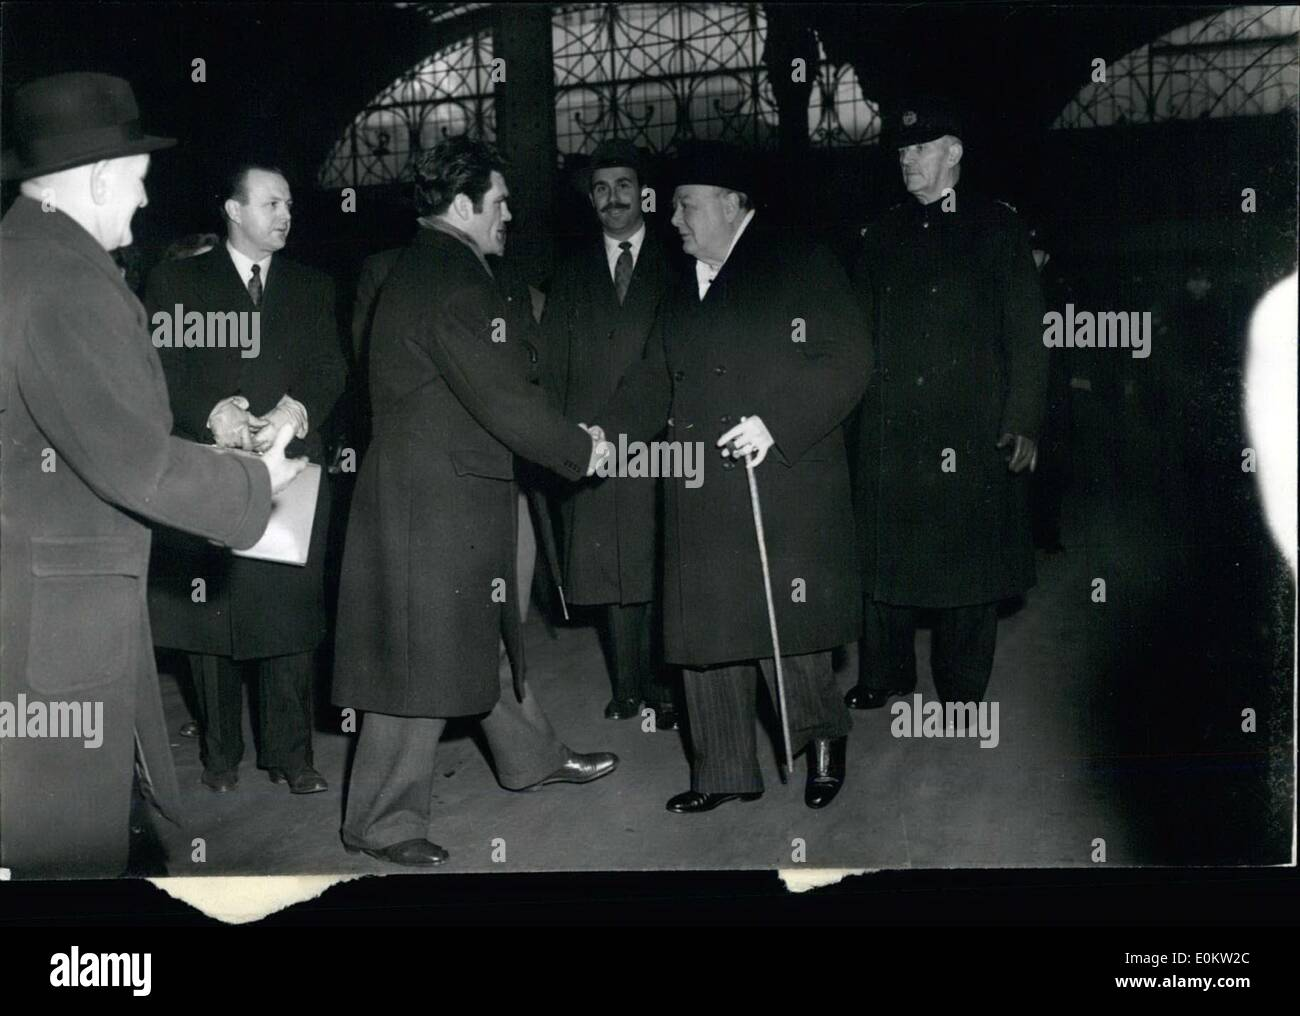 Feb. 02, 1950 - Mr. Churchill Leabes For Cardiff Freddie Mills Sees Him Off: After seeing off Joey Maxim when he left Waterloo-station on the ''Queen Mary'' boat train this morning. Freddie Milis went to Paddington to see Mr. Winston Churchill off, when Britain's war time Prime Minister left for Cardiff. where he will address a great meeting at Ninian Park, the Cardiff City football ground, as part of this General City football Campaign Tomorrow Mr. Churchill Election to Devonport. Photo shows Mr - Stock Image